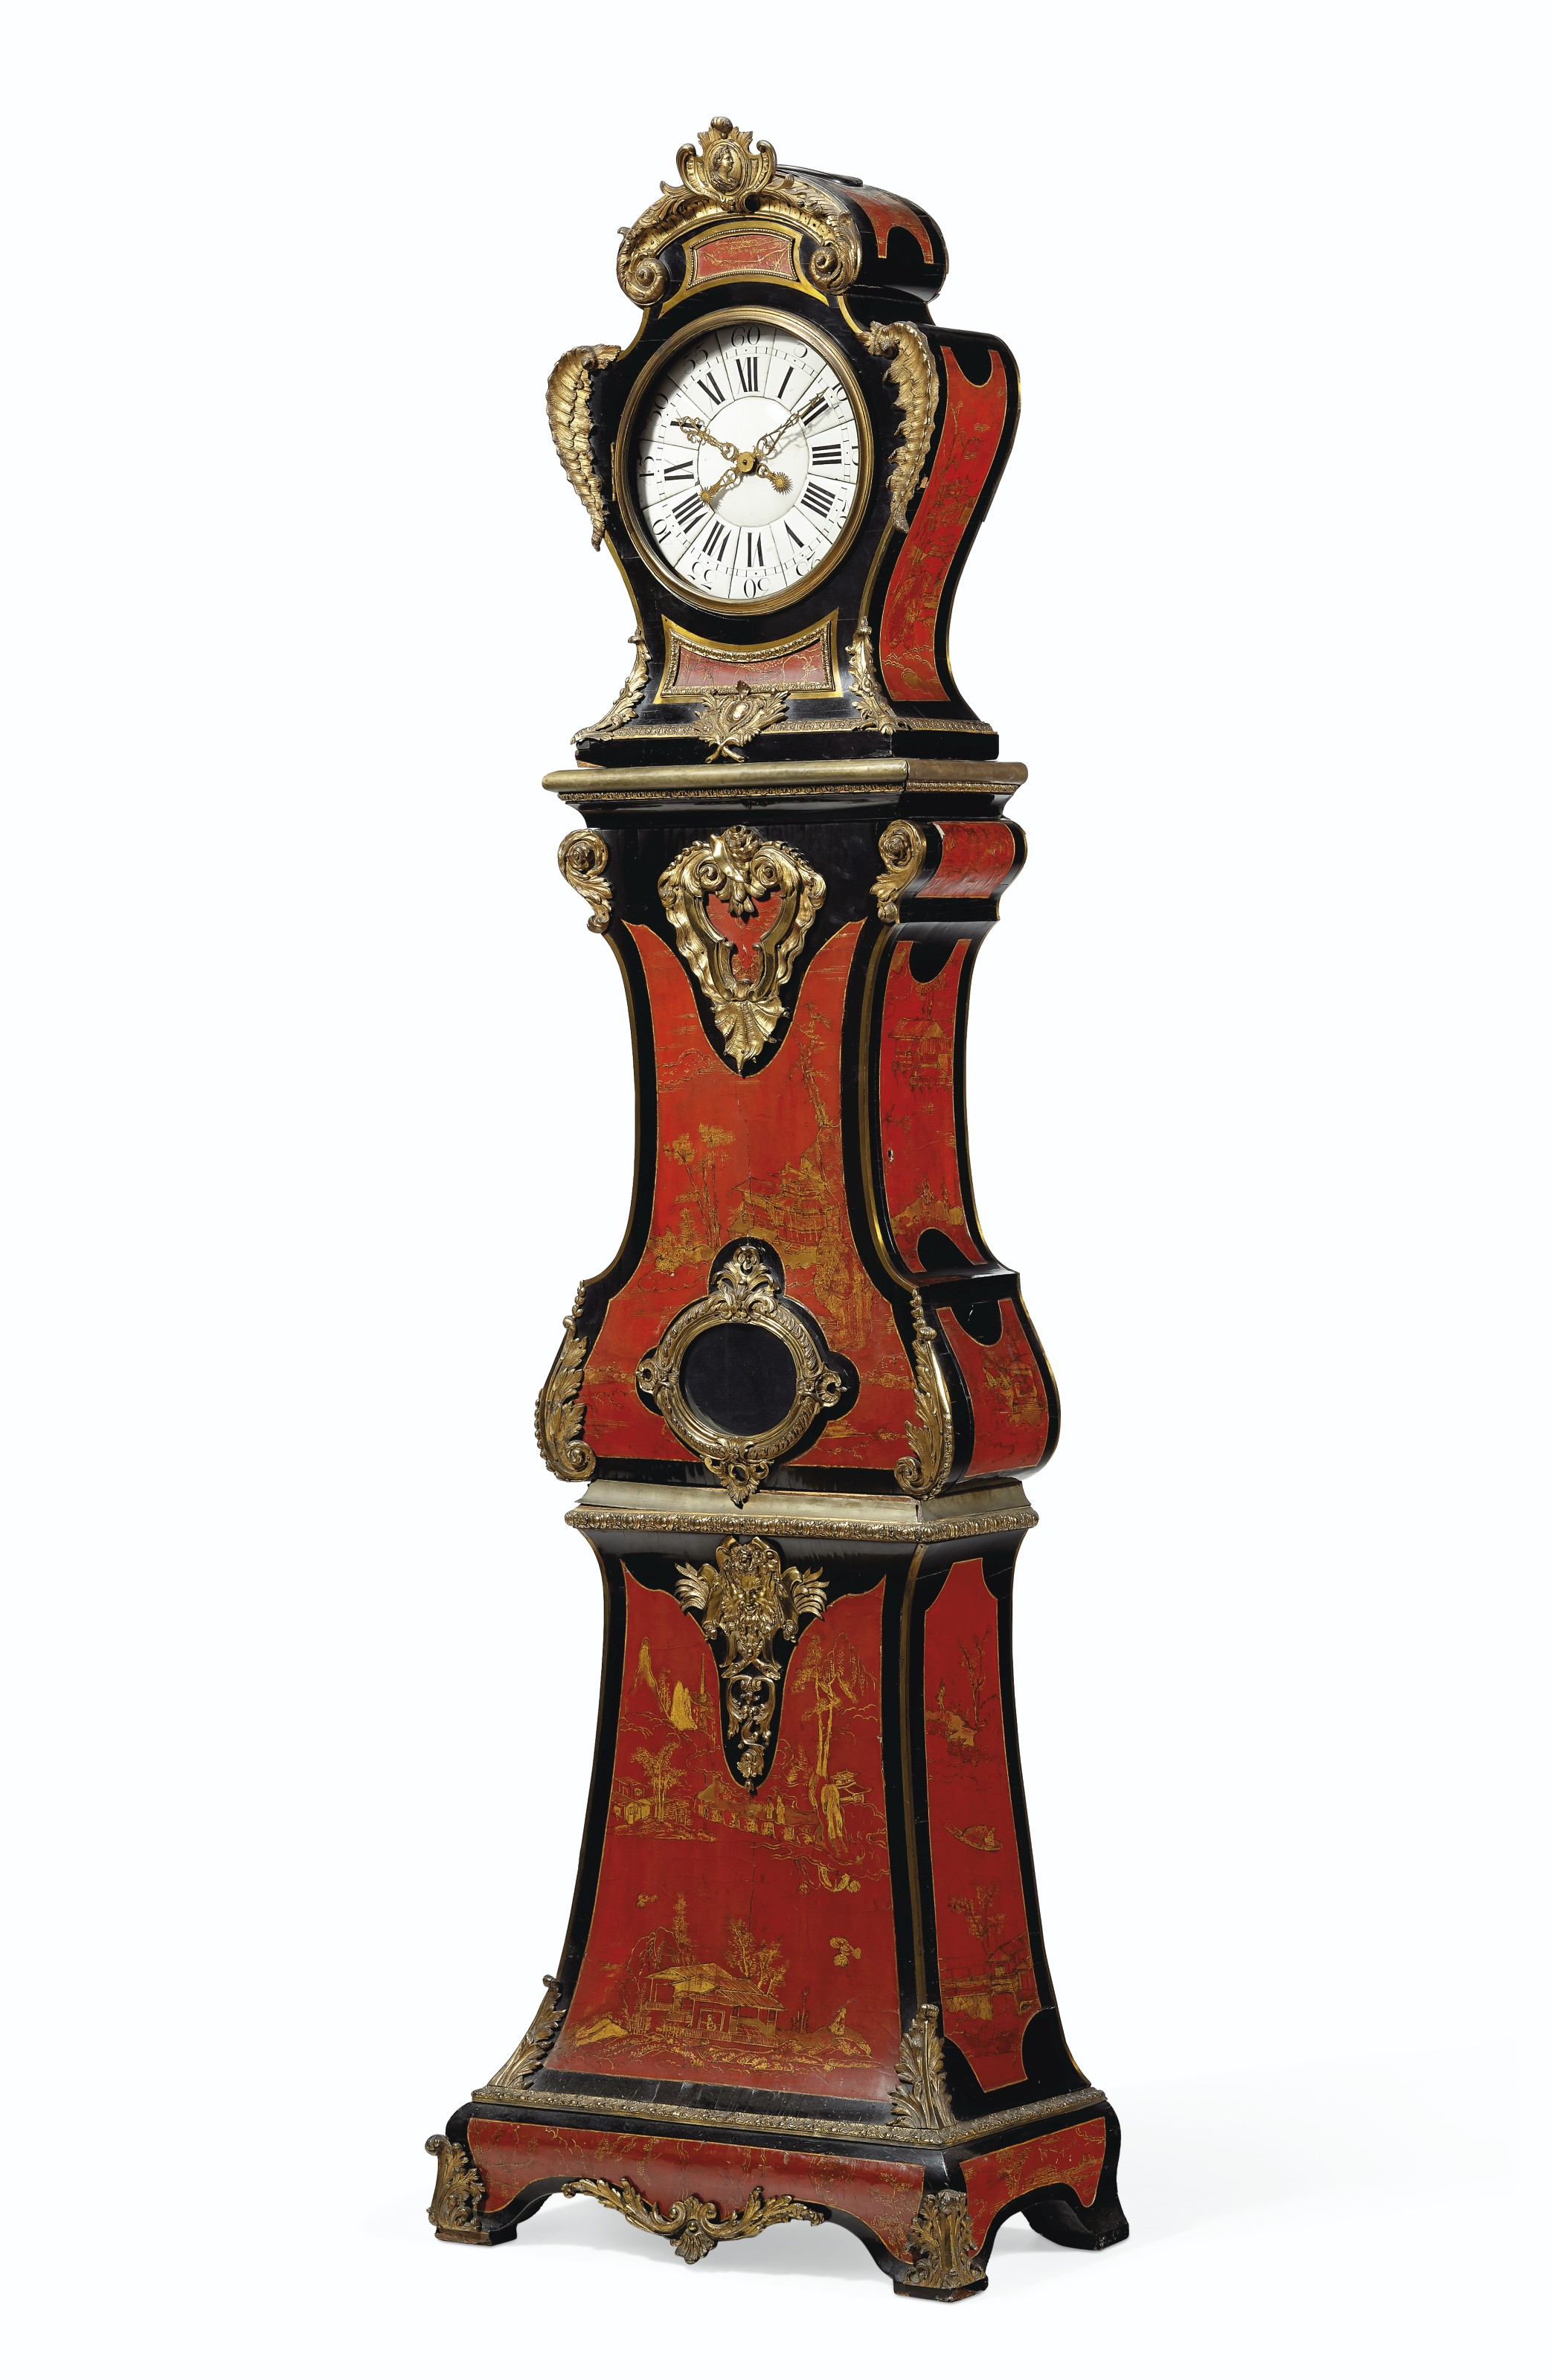 A LOUIS XV ORMOLU-MOUNTED RED AND GILT CHINESE LACQUER AND EBONIZED REGULATEUR